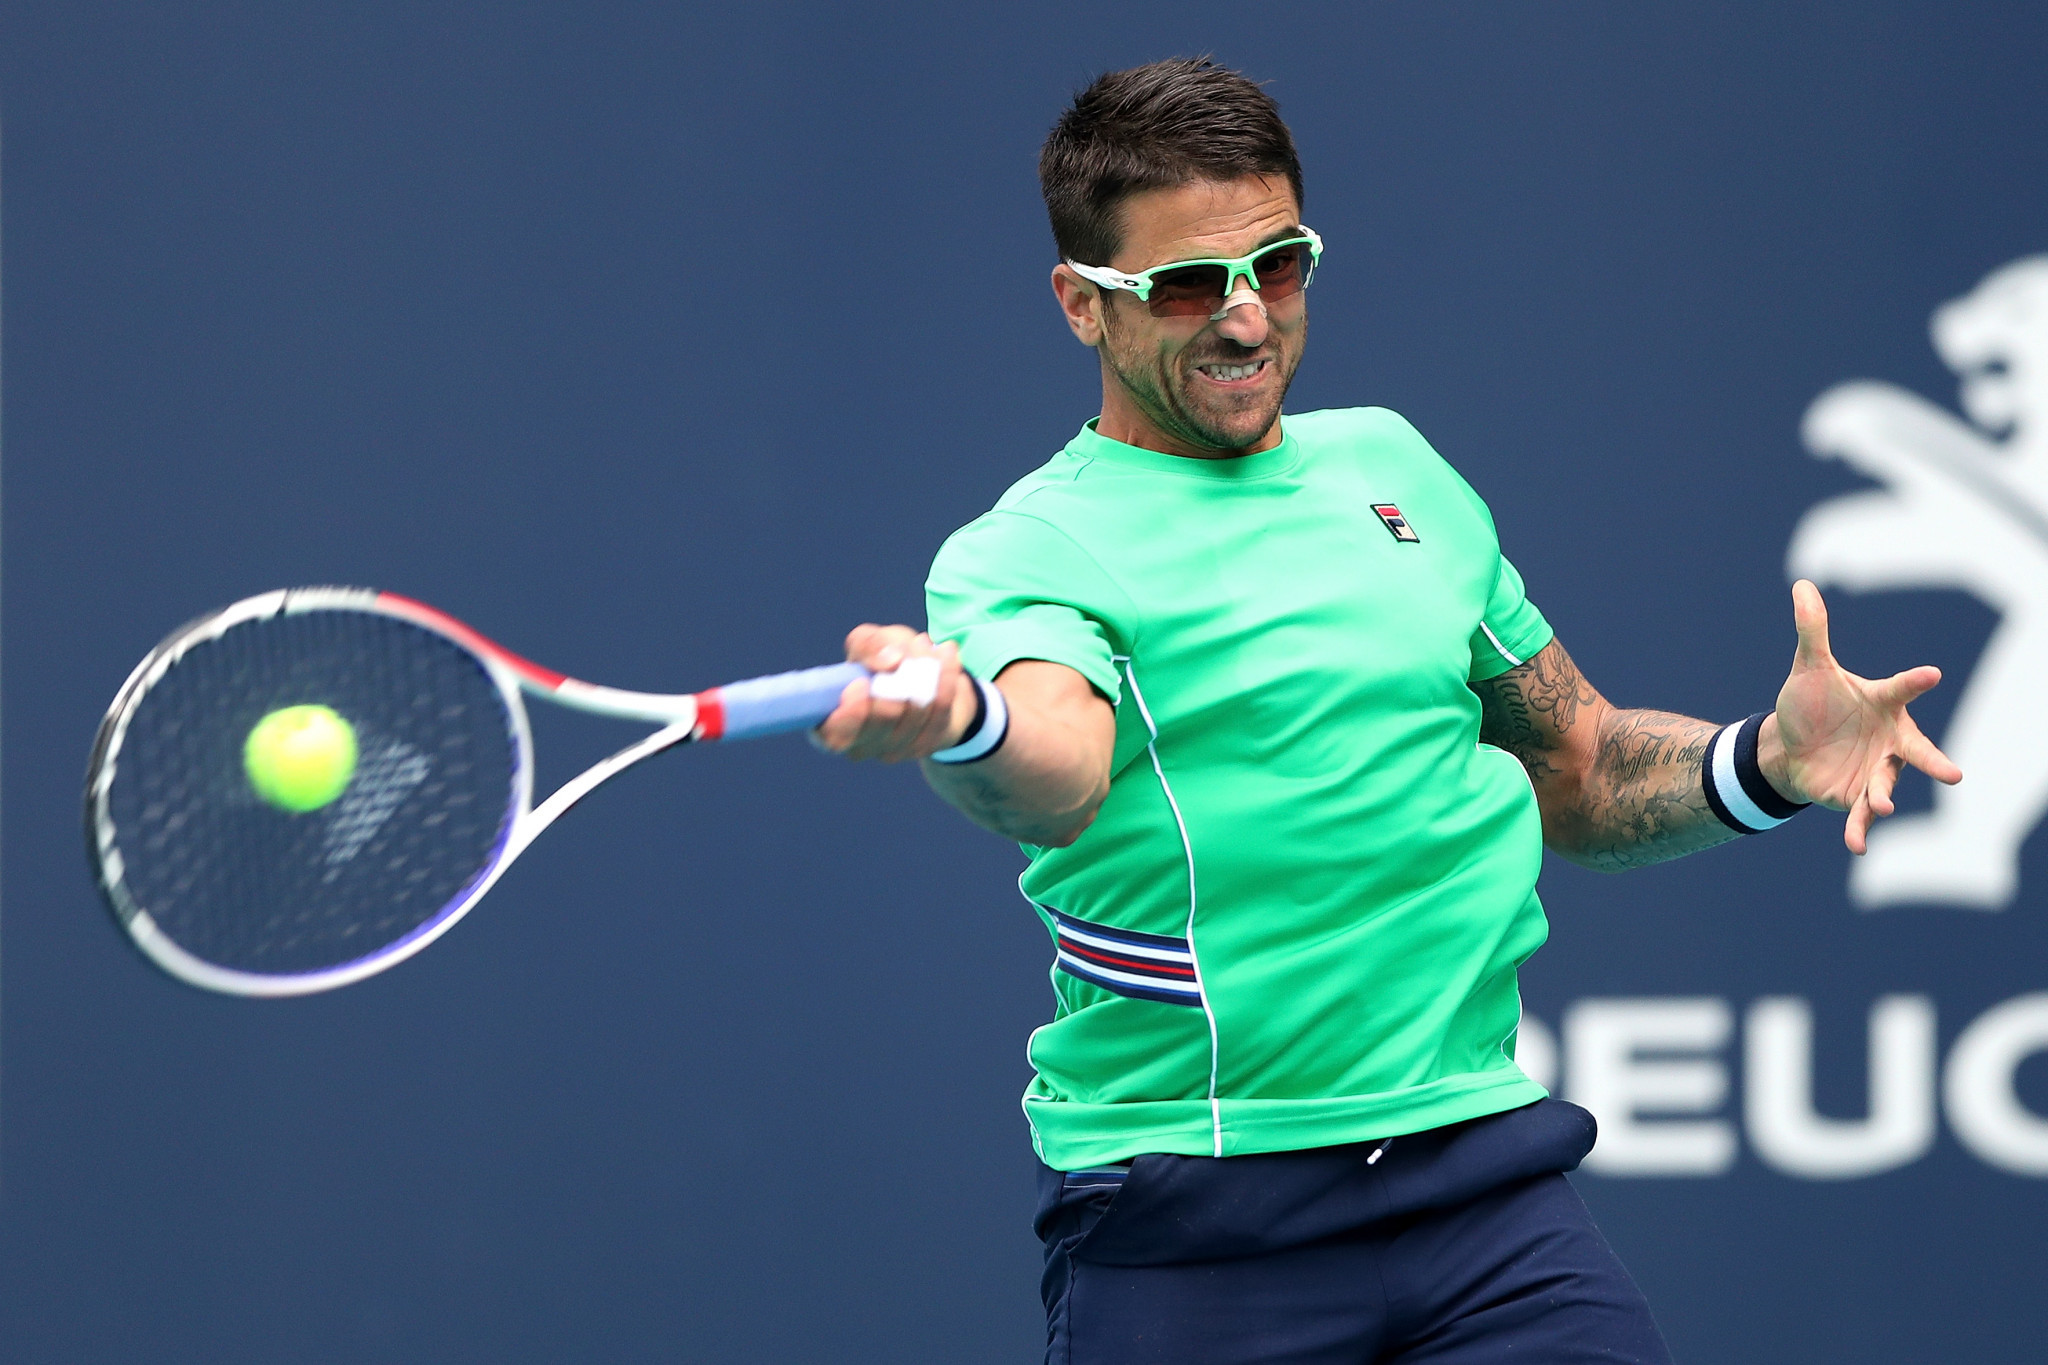 Serbia's Janko Tipsarević earned his first ATP Tour-level win since August 2017 on a rain-hit day at the Miami Open ©Getty Images